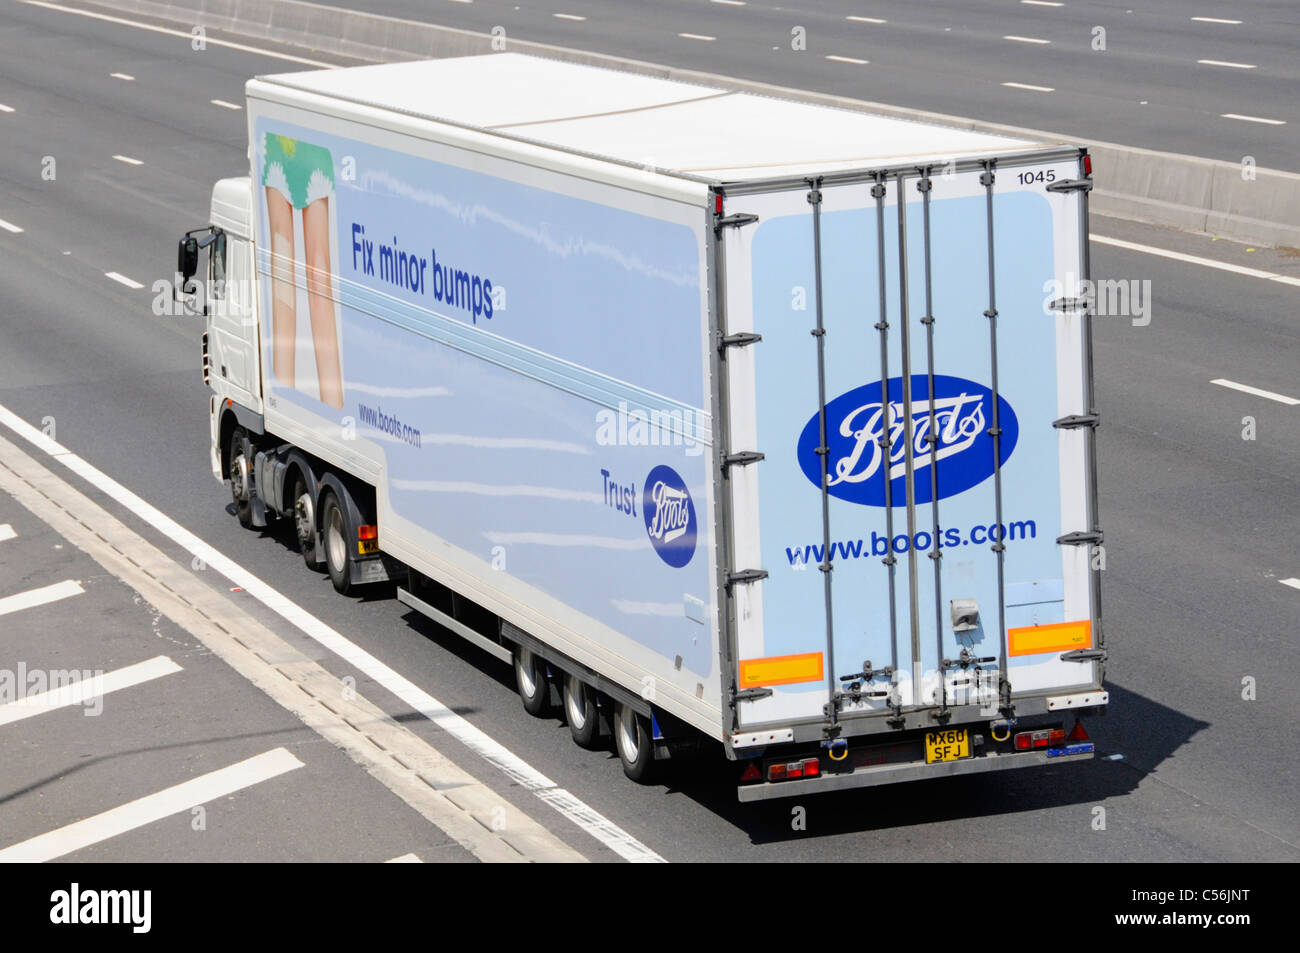 Side & back view Boots pharmacy chemist business hgv supply chain lorry truck & trailer with graphics advertising - Stock Image